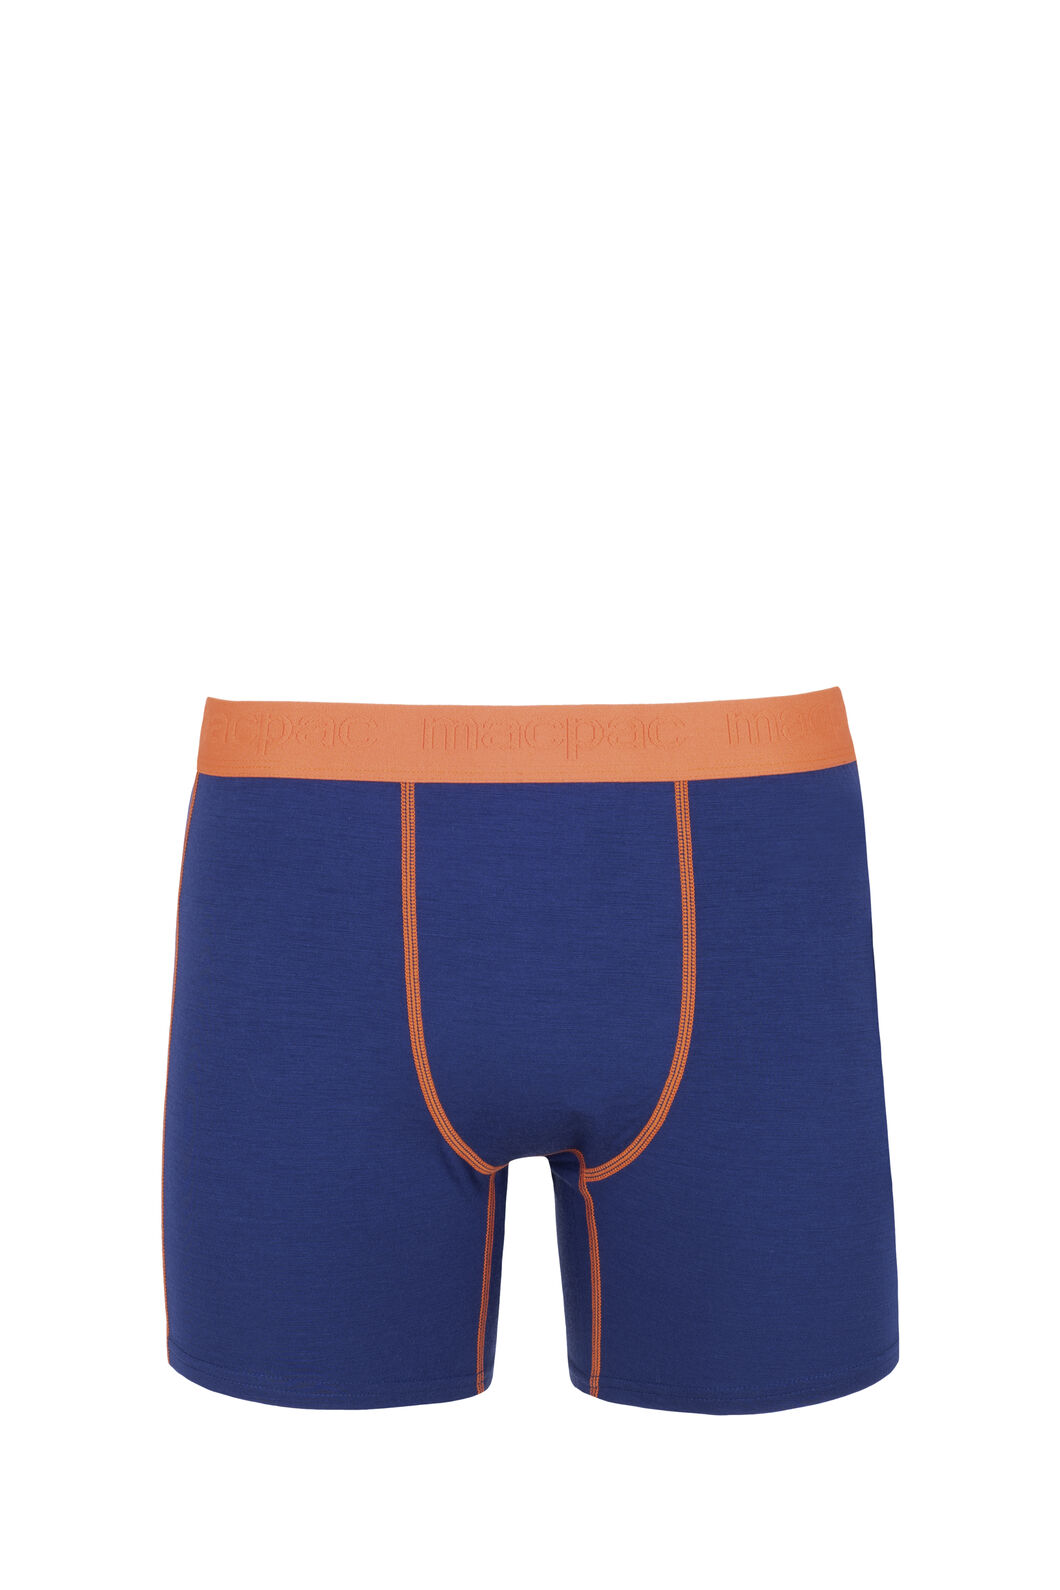 Macpac 180 Merino Boxers - Men's, Blue Depths/Burnt Orange, hi-res